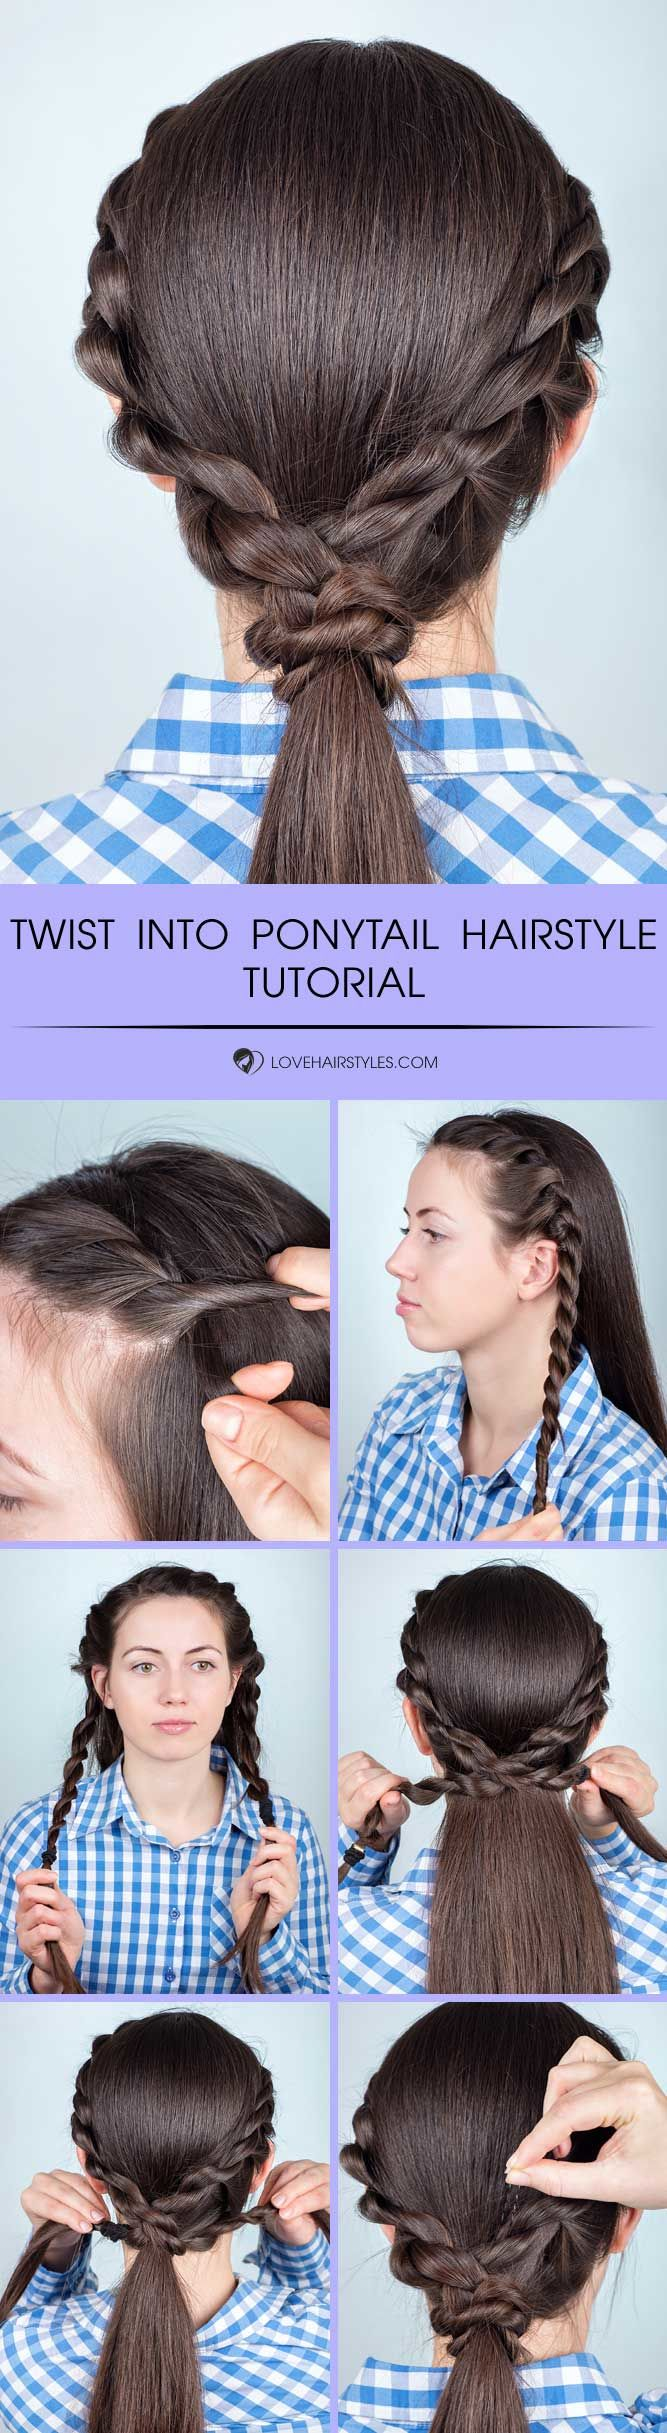 Twist Into Ponytail Hairstyle #braids #hairtutorial